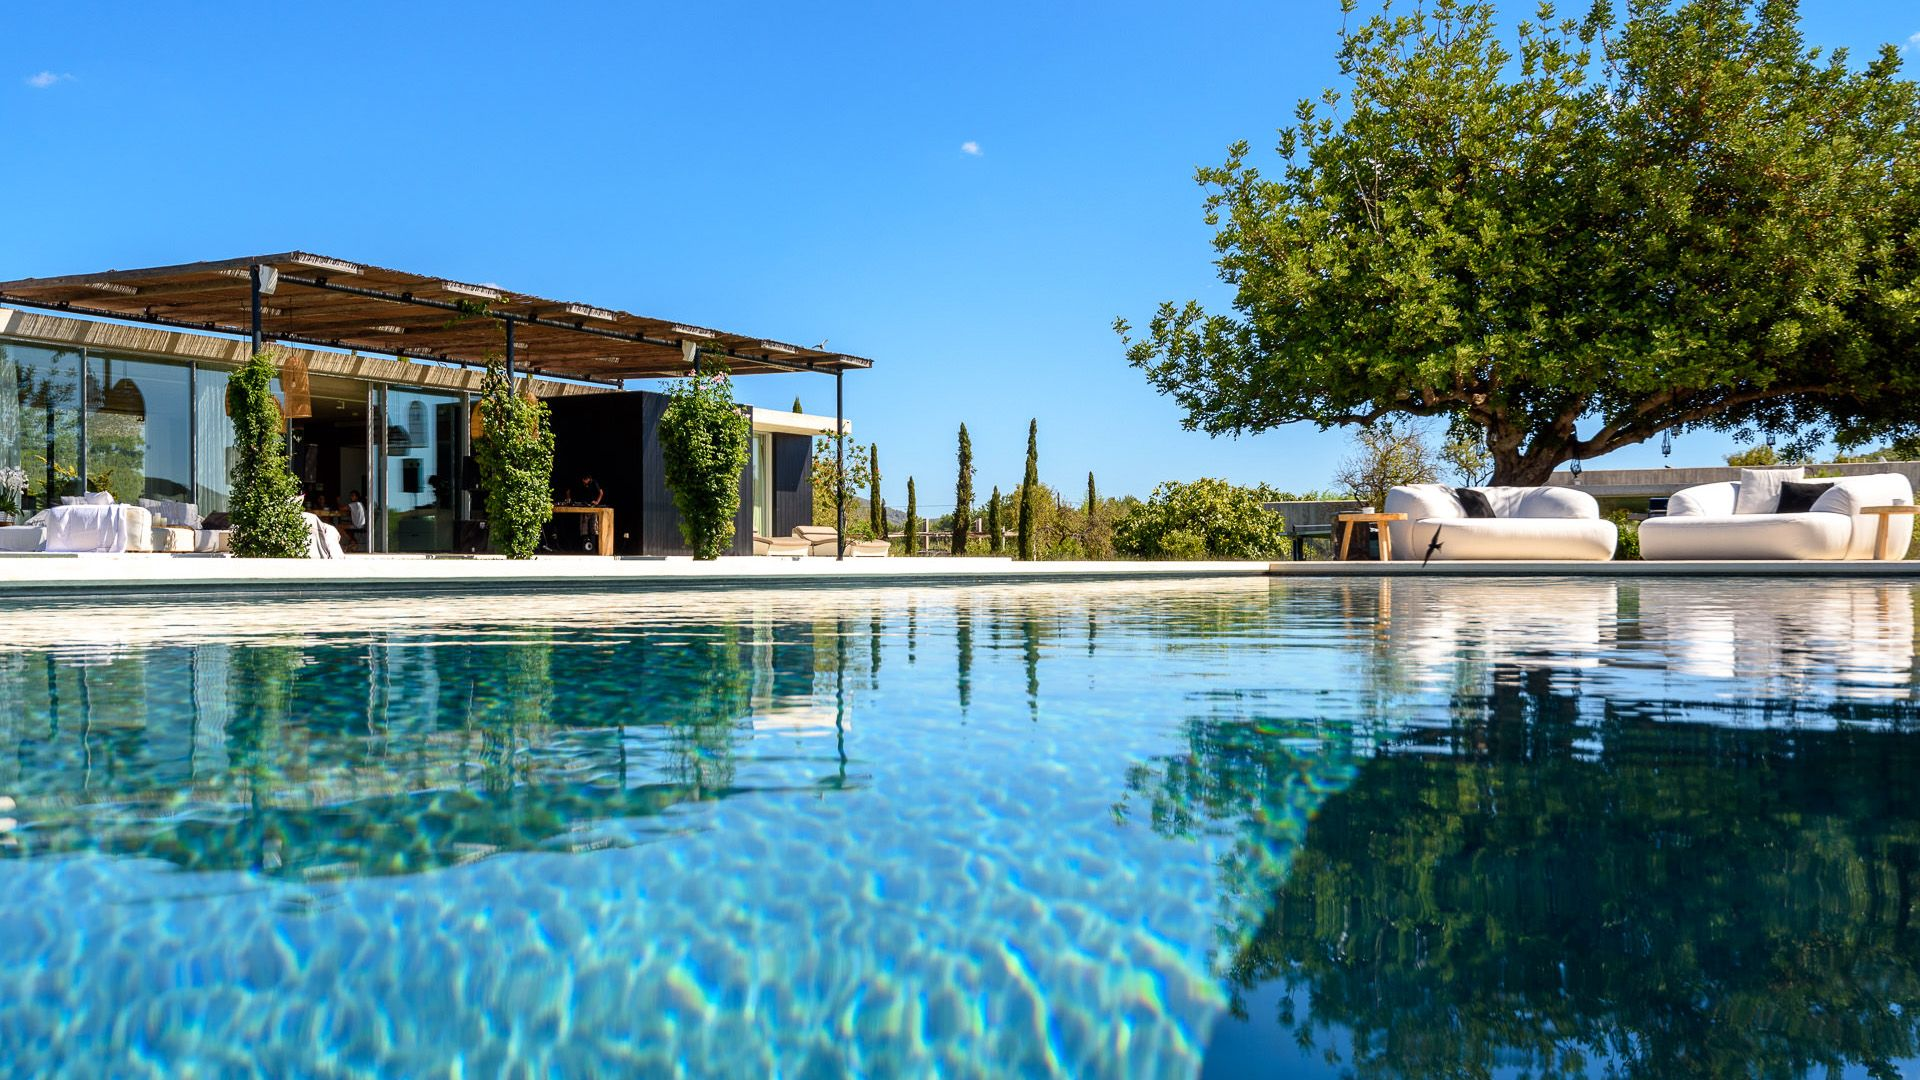 Villa Los Amigos, San Lorenzo, 5 bedrooms, Ibiza, Luxury Villa, Holiday Villa, 5 bedroom luxury villa close to Ibiza town